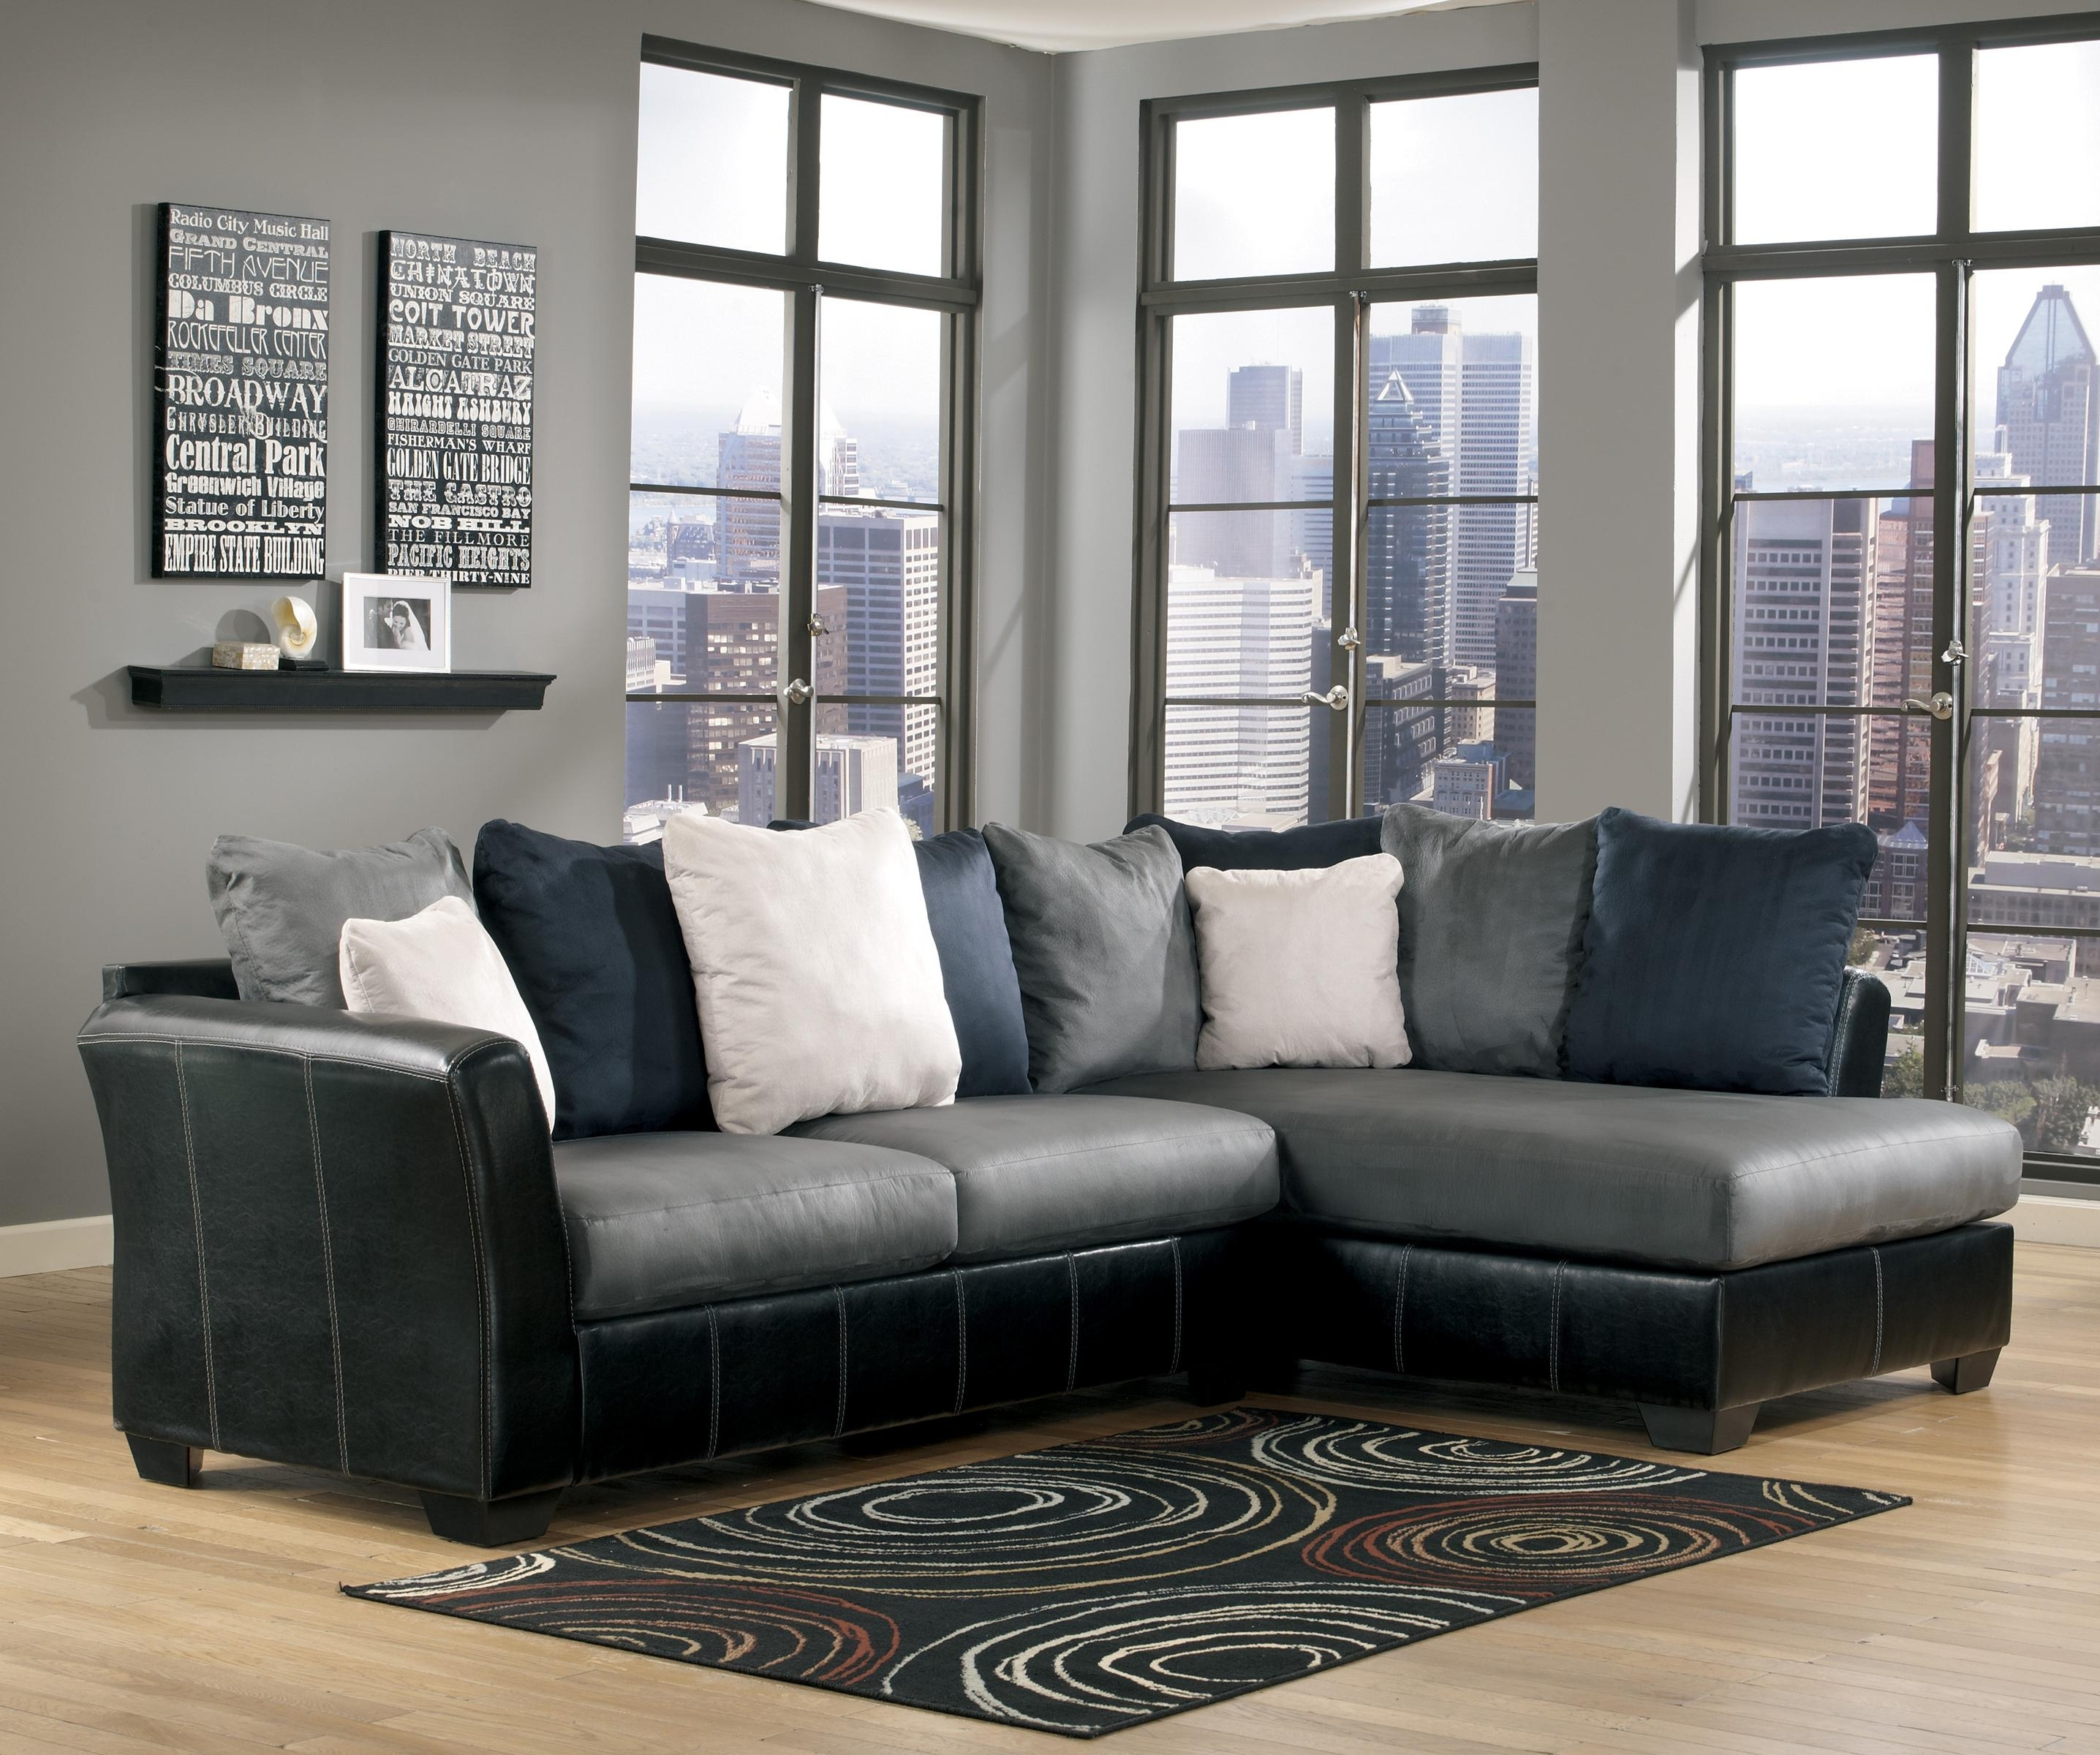 Well Liked Masoli – Cobblestone 2 Piece Sectional With Chaisebenchcraft Throughout Eau Claire Wi Sectional Sofas (View 5 of 20)